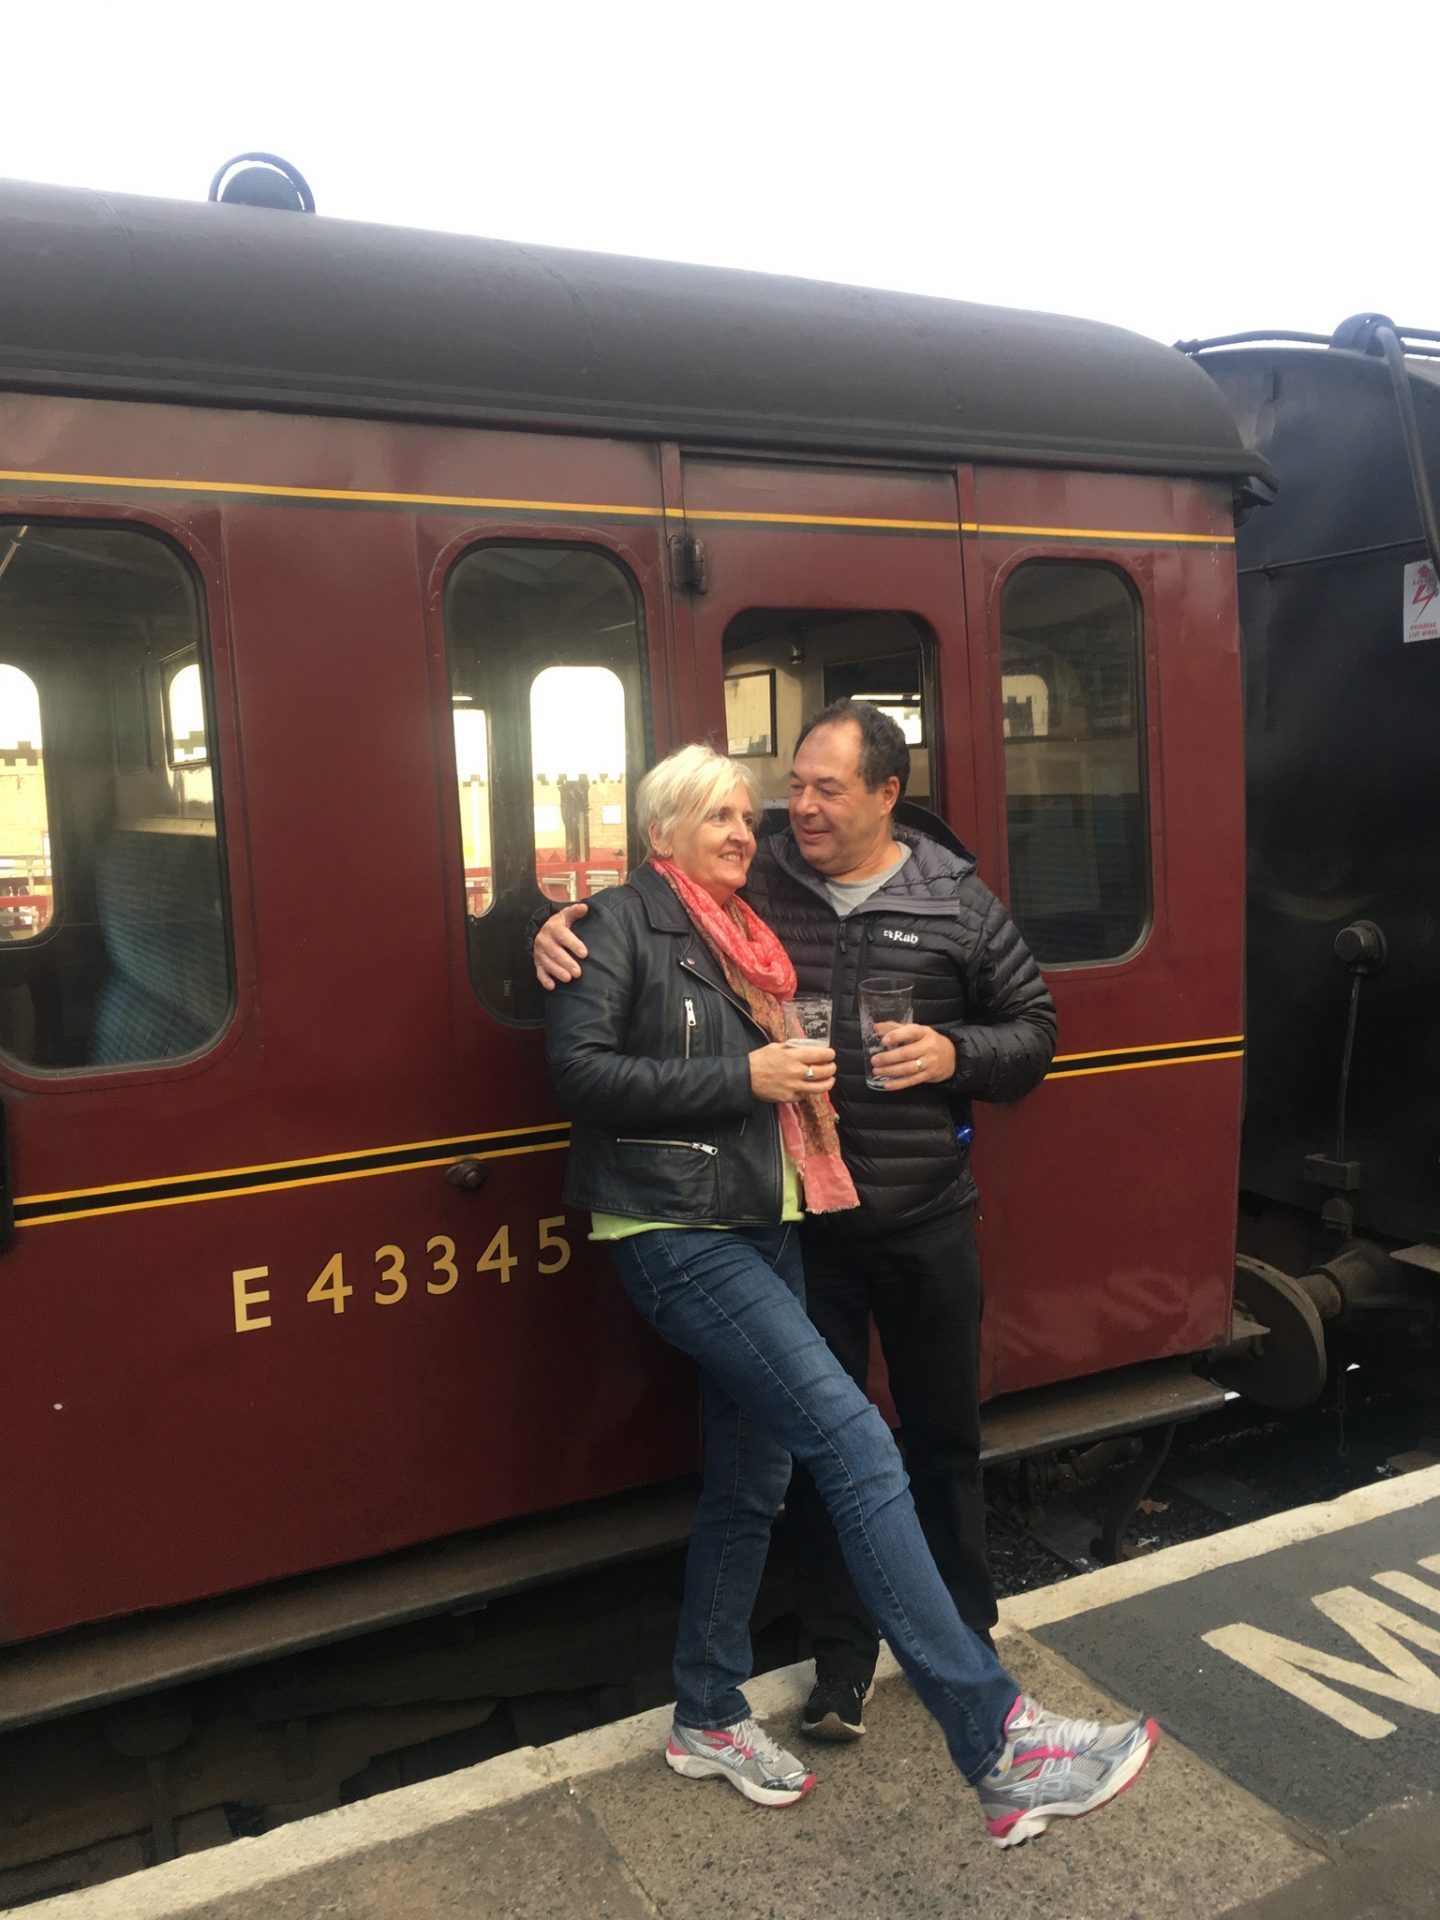 Two people in their fifties stood next to a steam train with a beer in hand at the KWVR beer festival